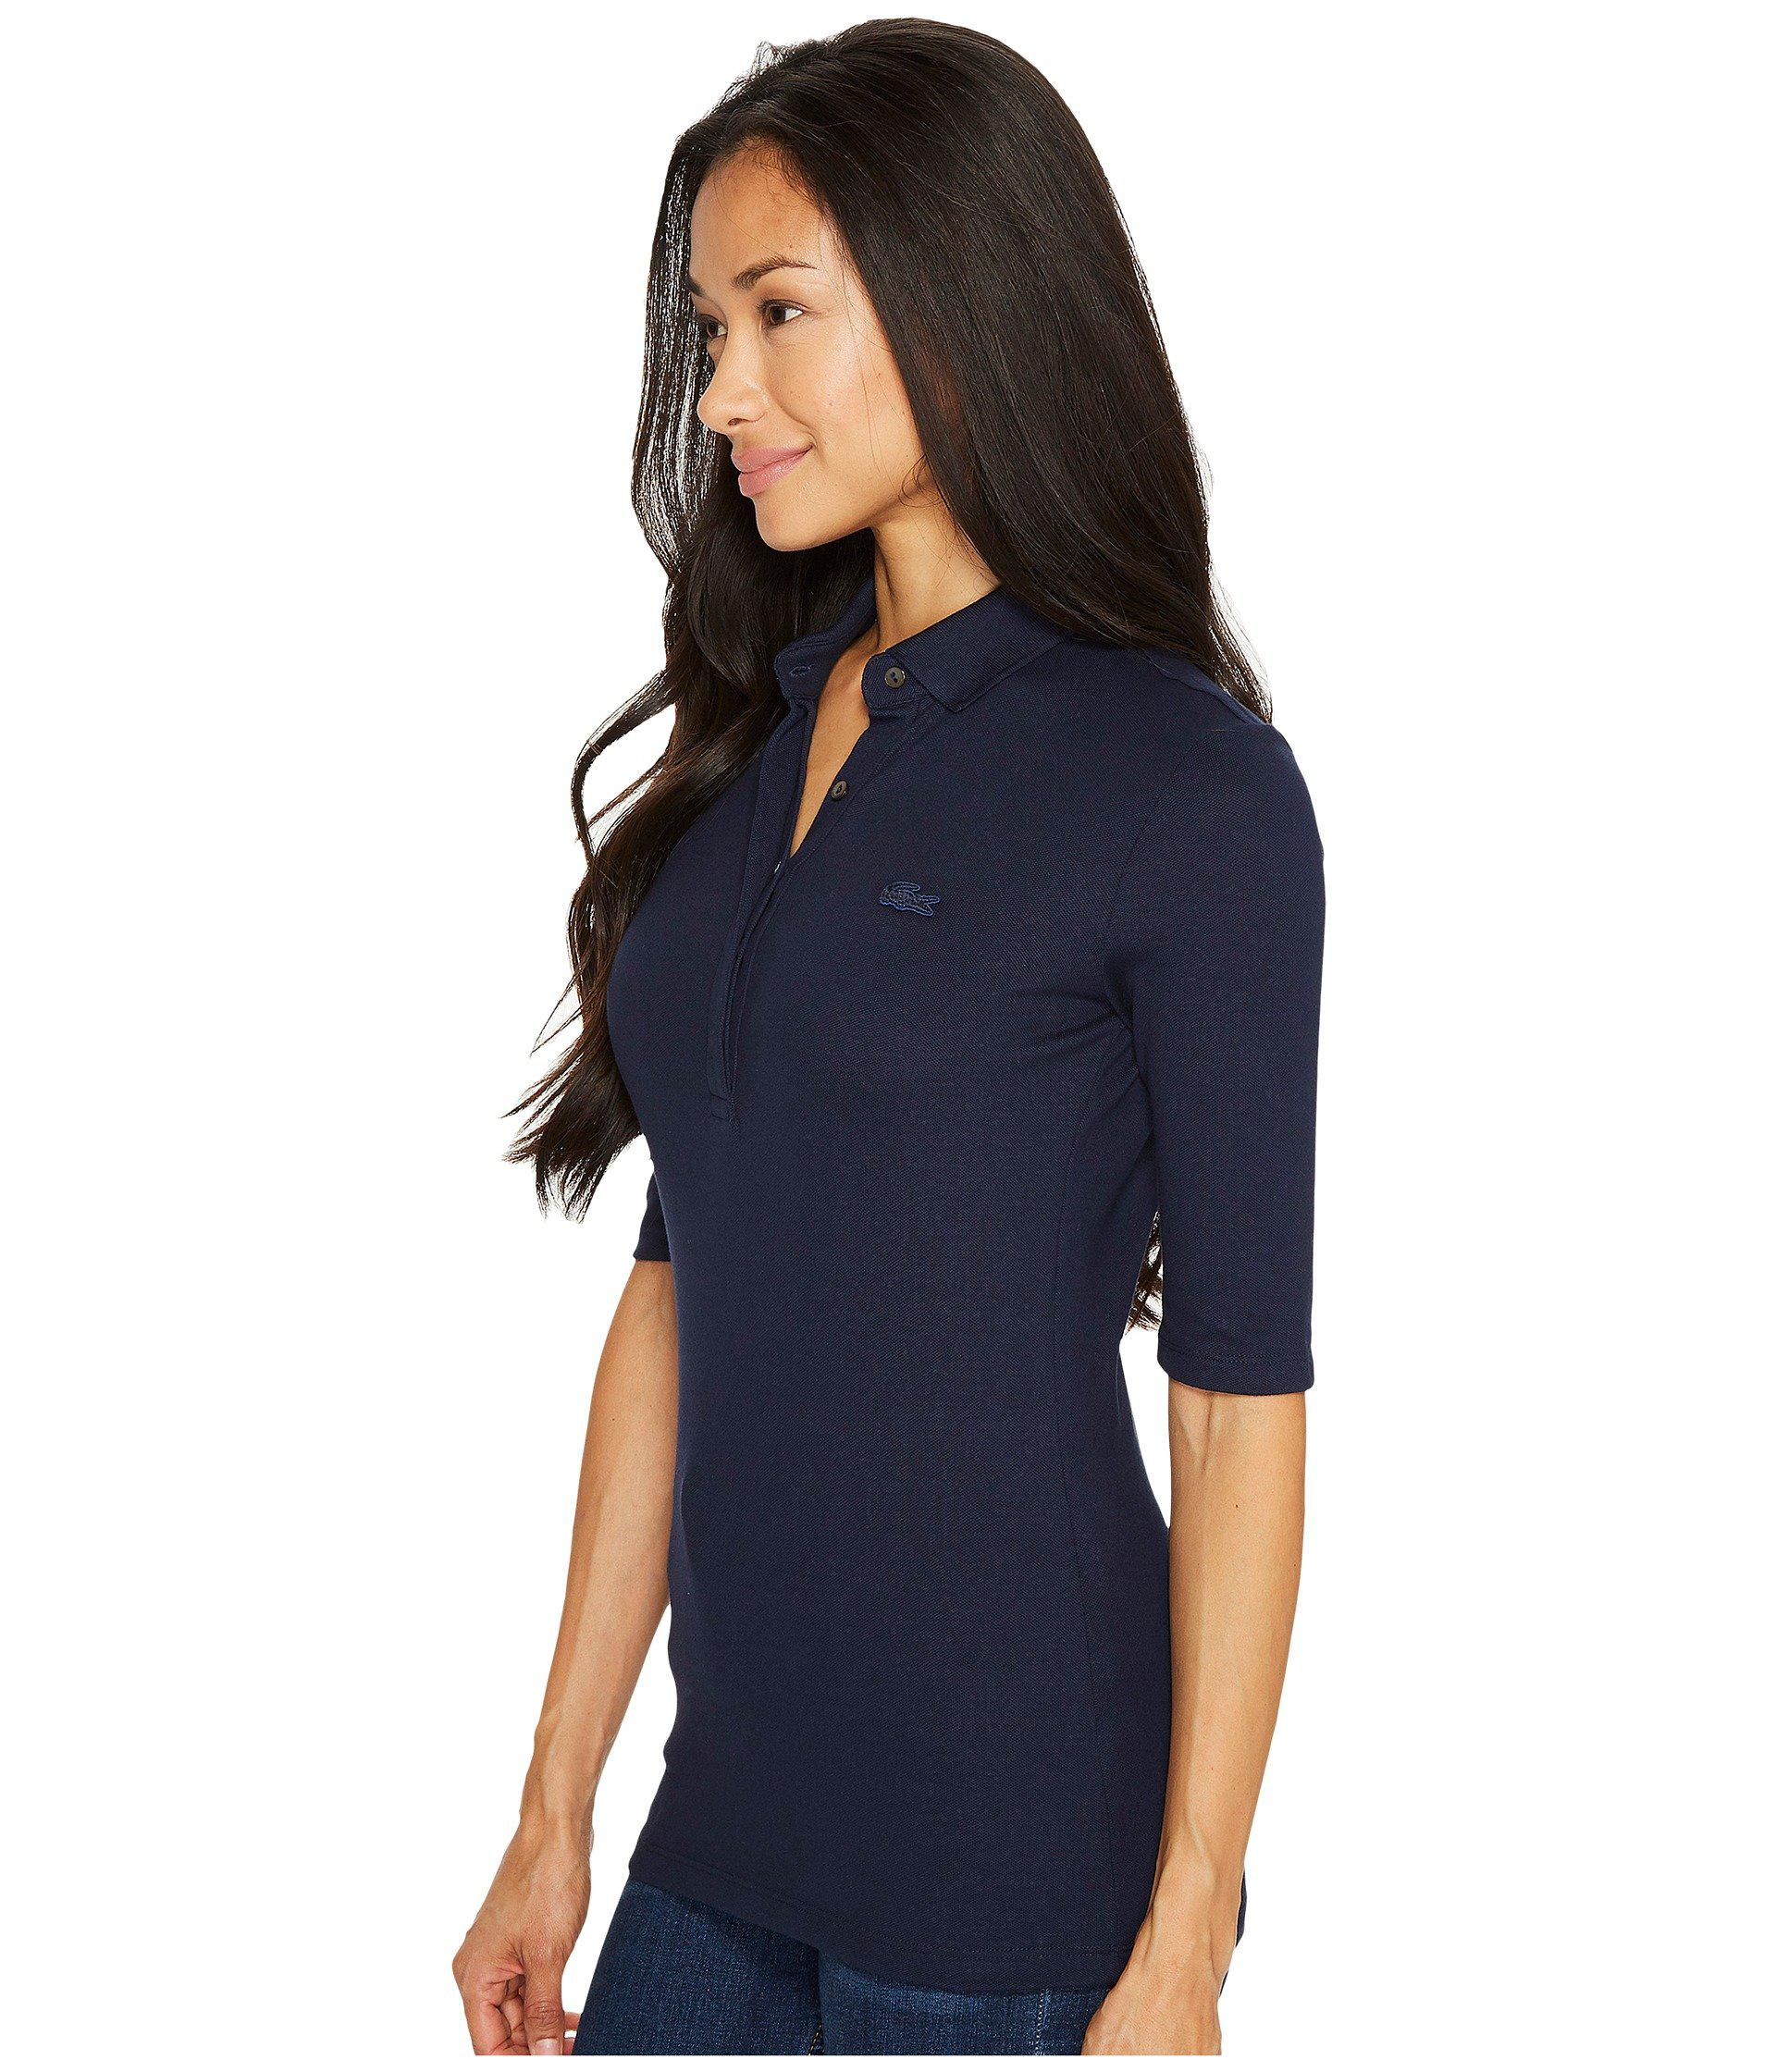 db9b2b85112e Lyst - Lacoste 1 2 Sleeve Slim Fit Stretch Pique Polo (navy Blue) Women s  Clothing in Blue